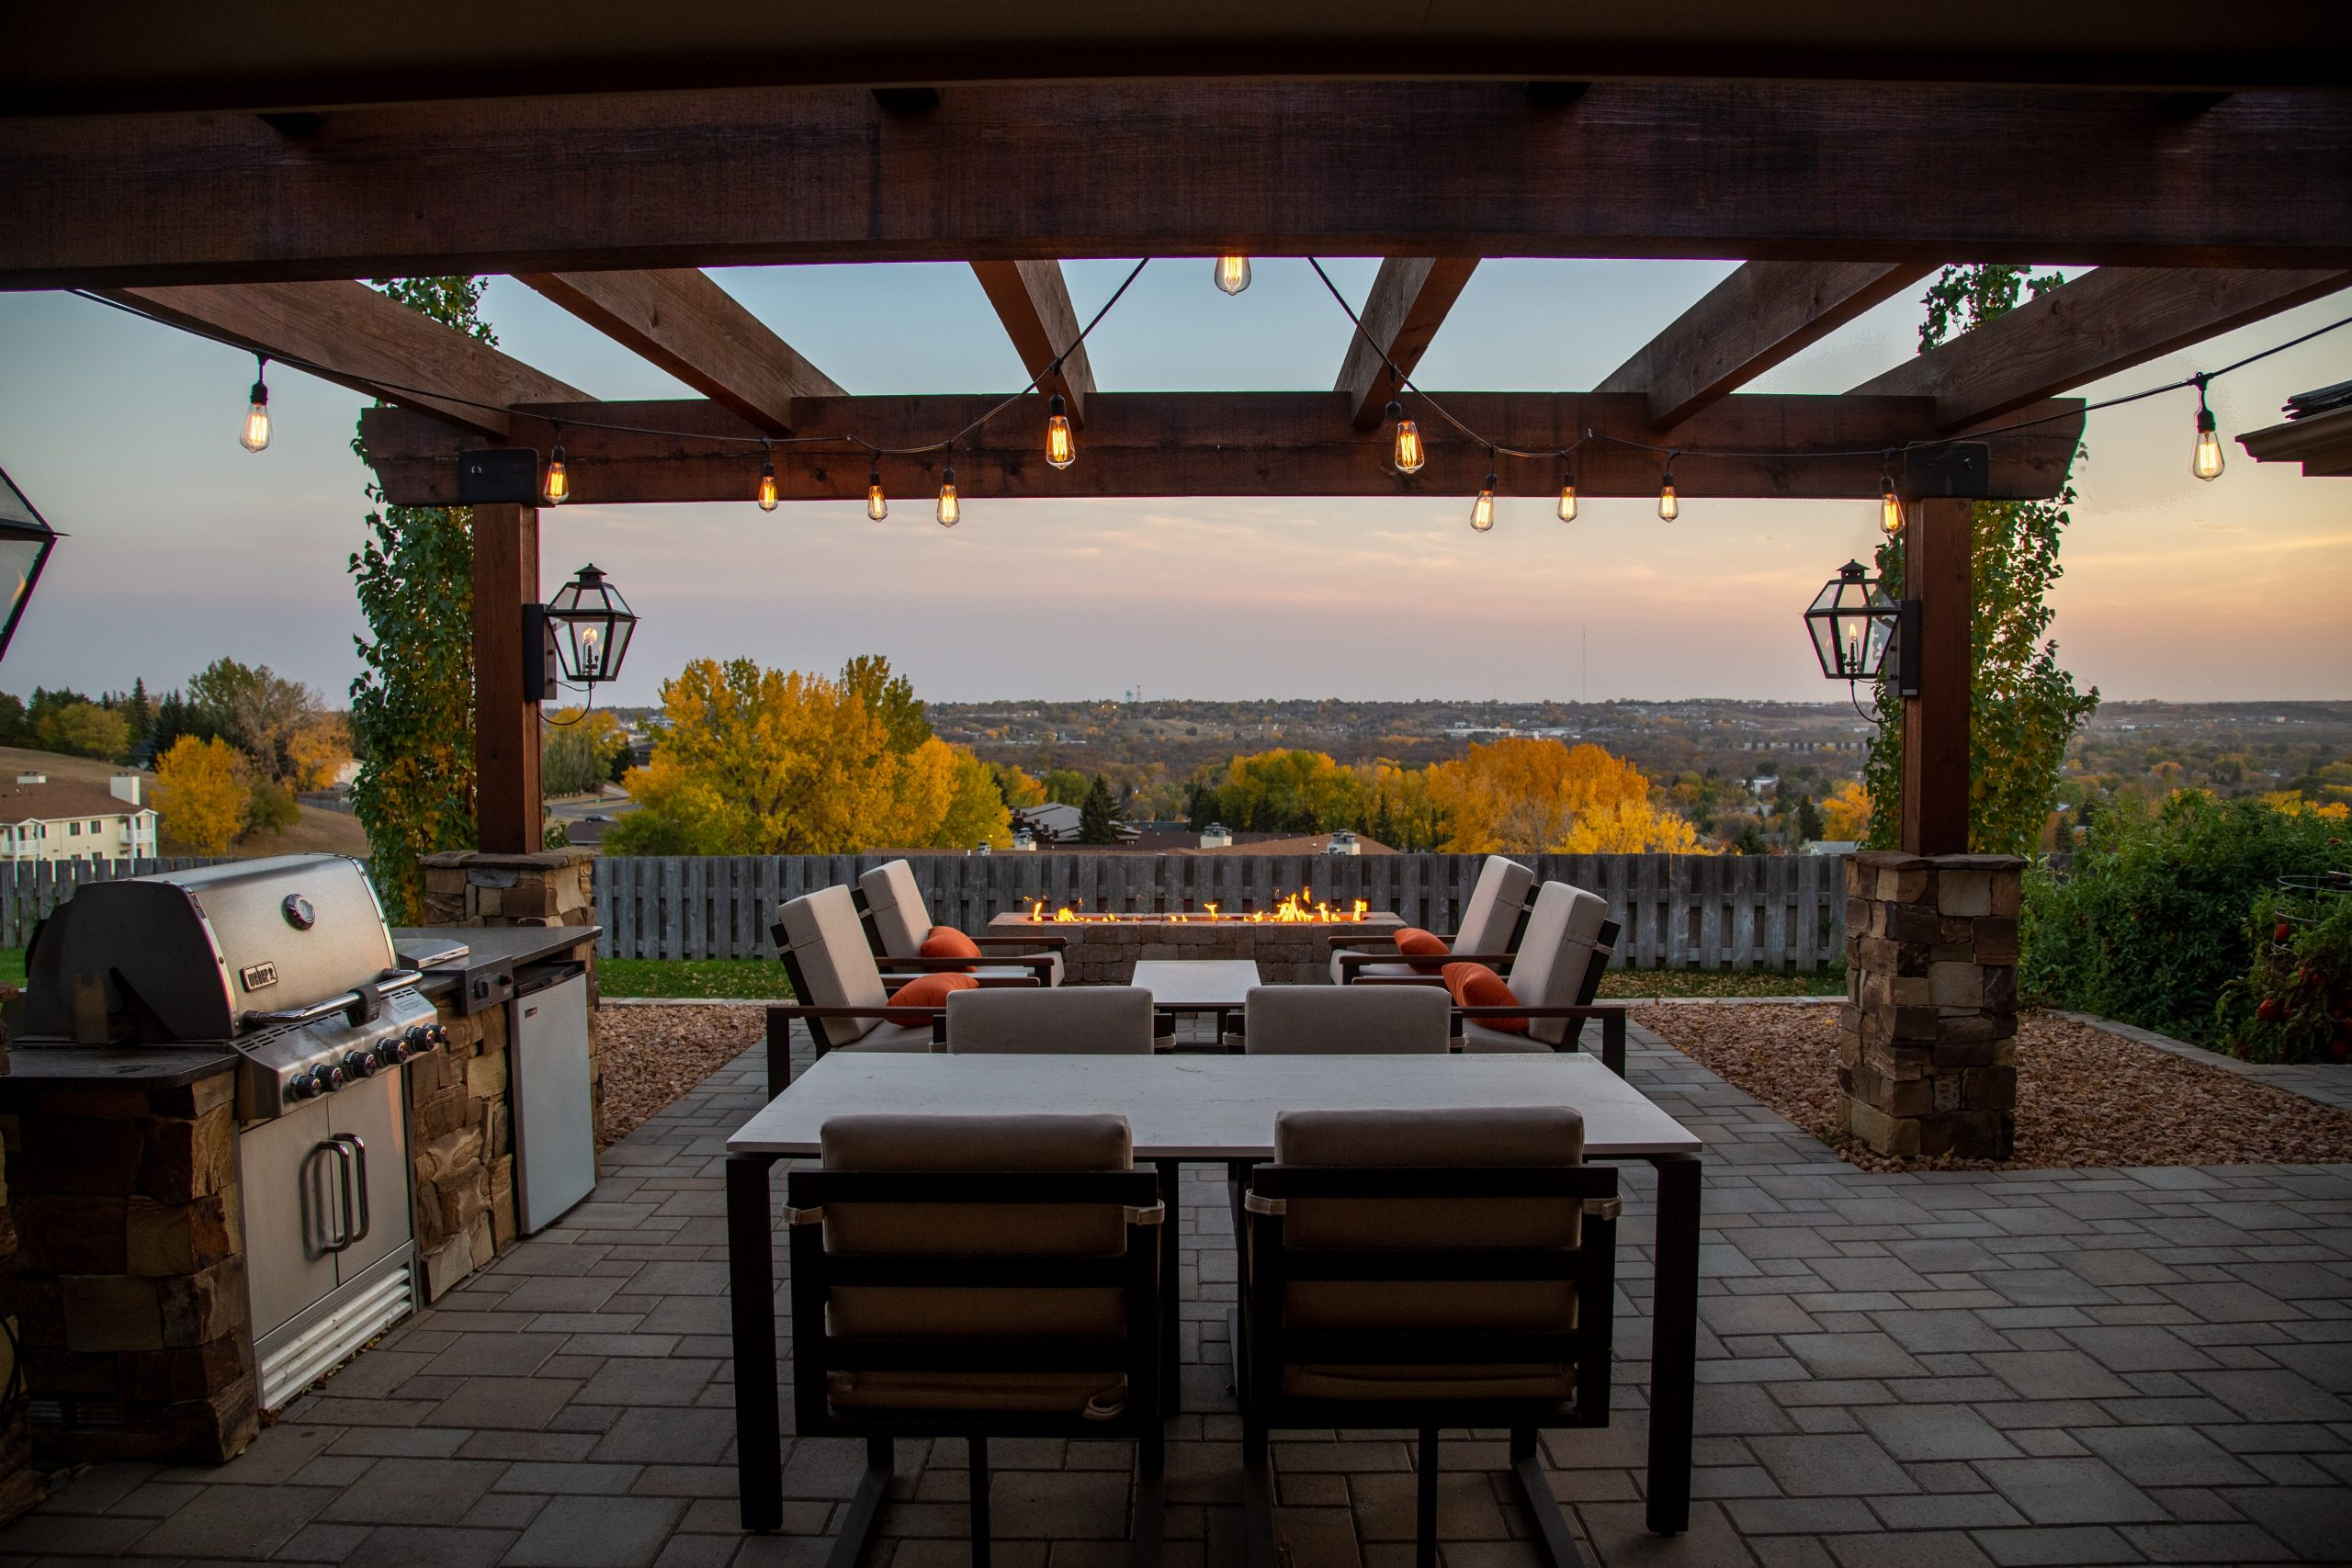 3 Points You Need to Know Before Constructing a Patio